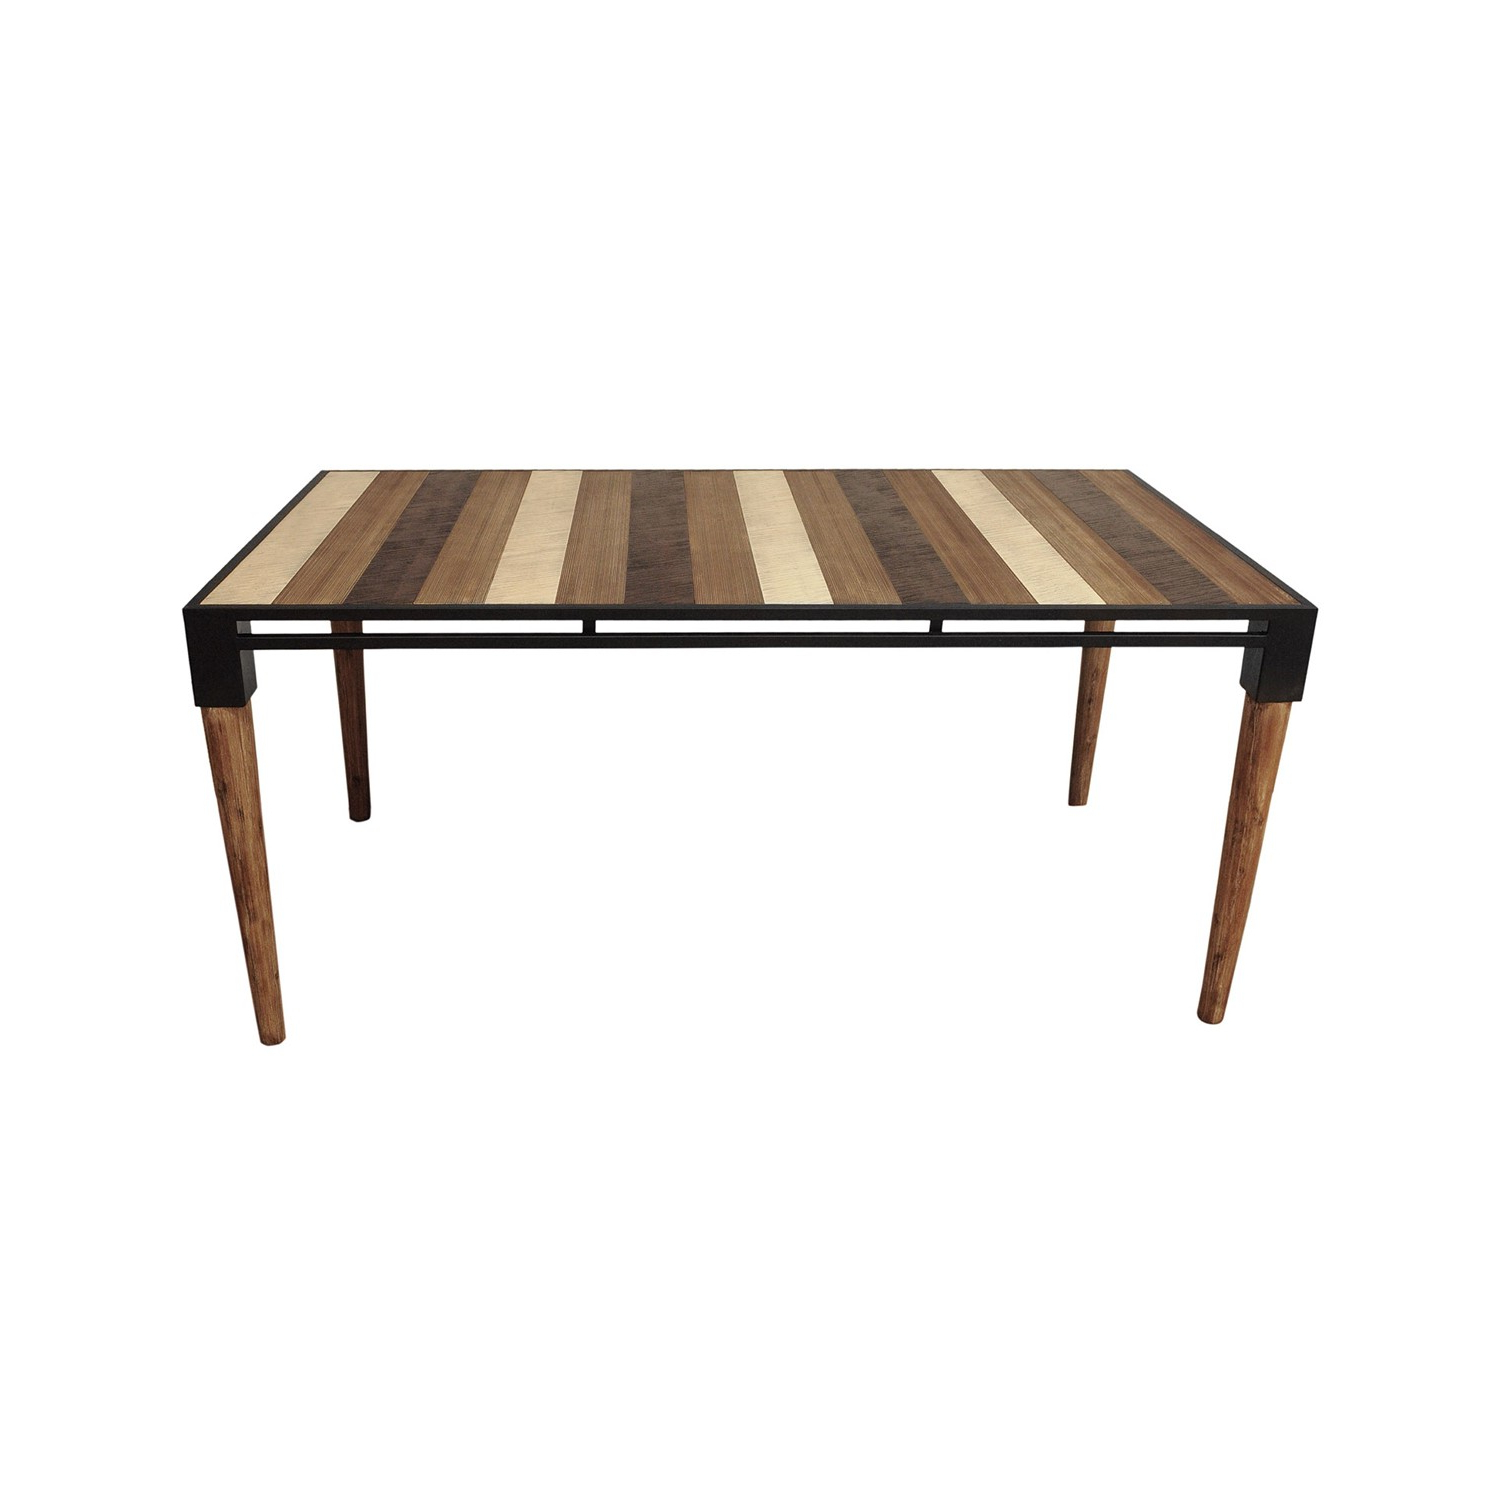 Well Liked Acacia Wood Medley Medium Dining Tables With Metal Base Intended For Medley Dining Table  Small (Gallery 5 of 30)